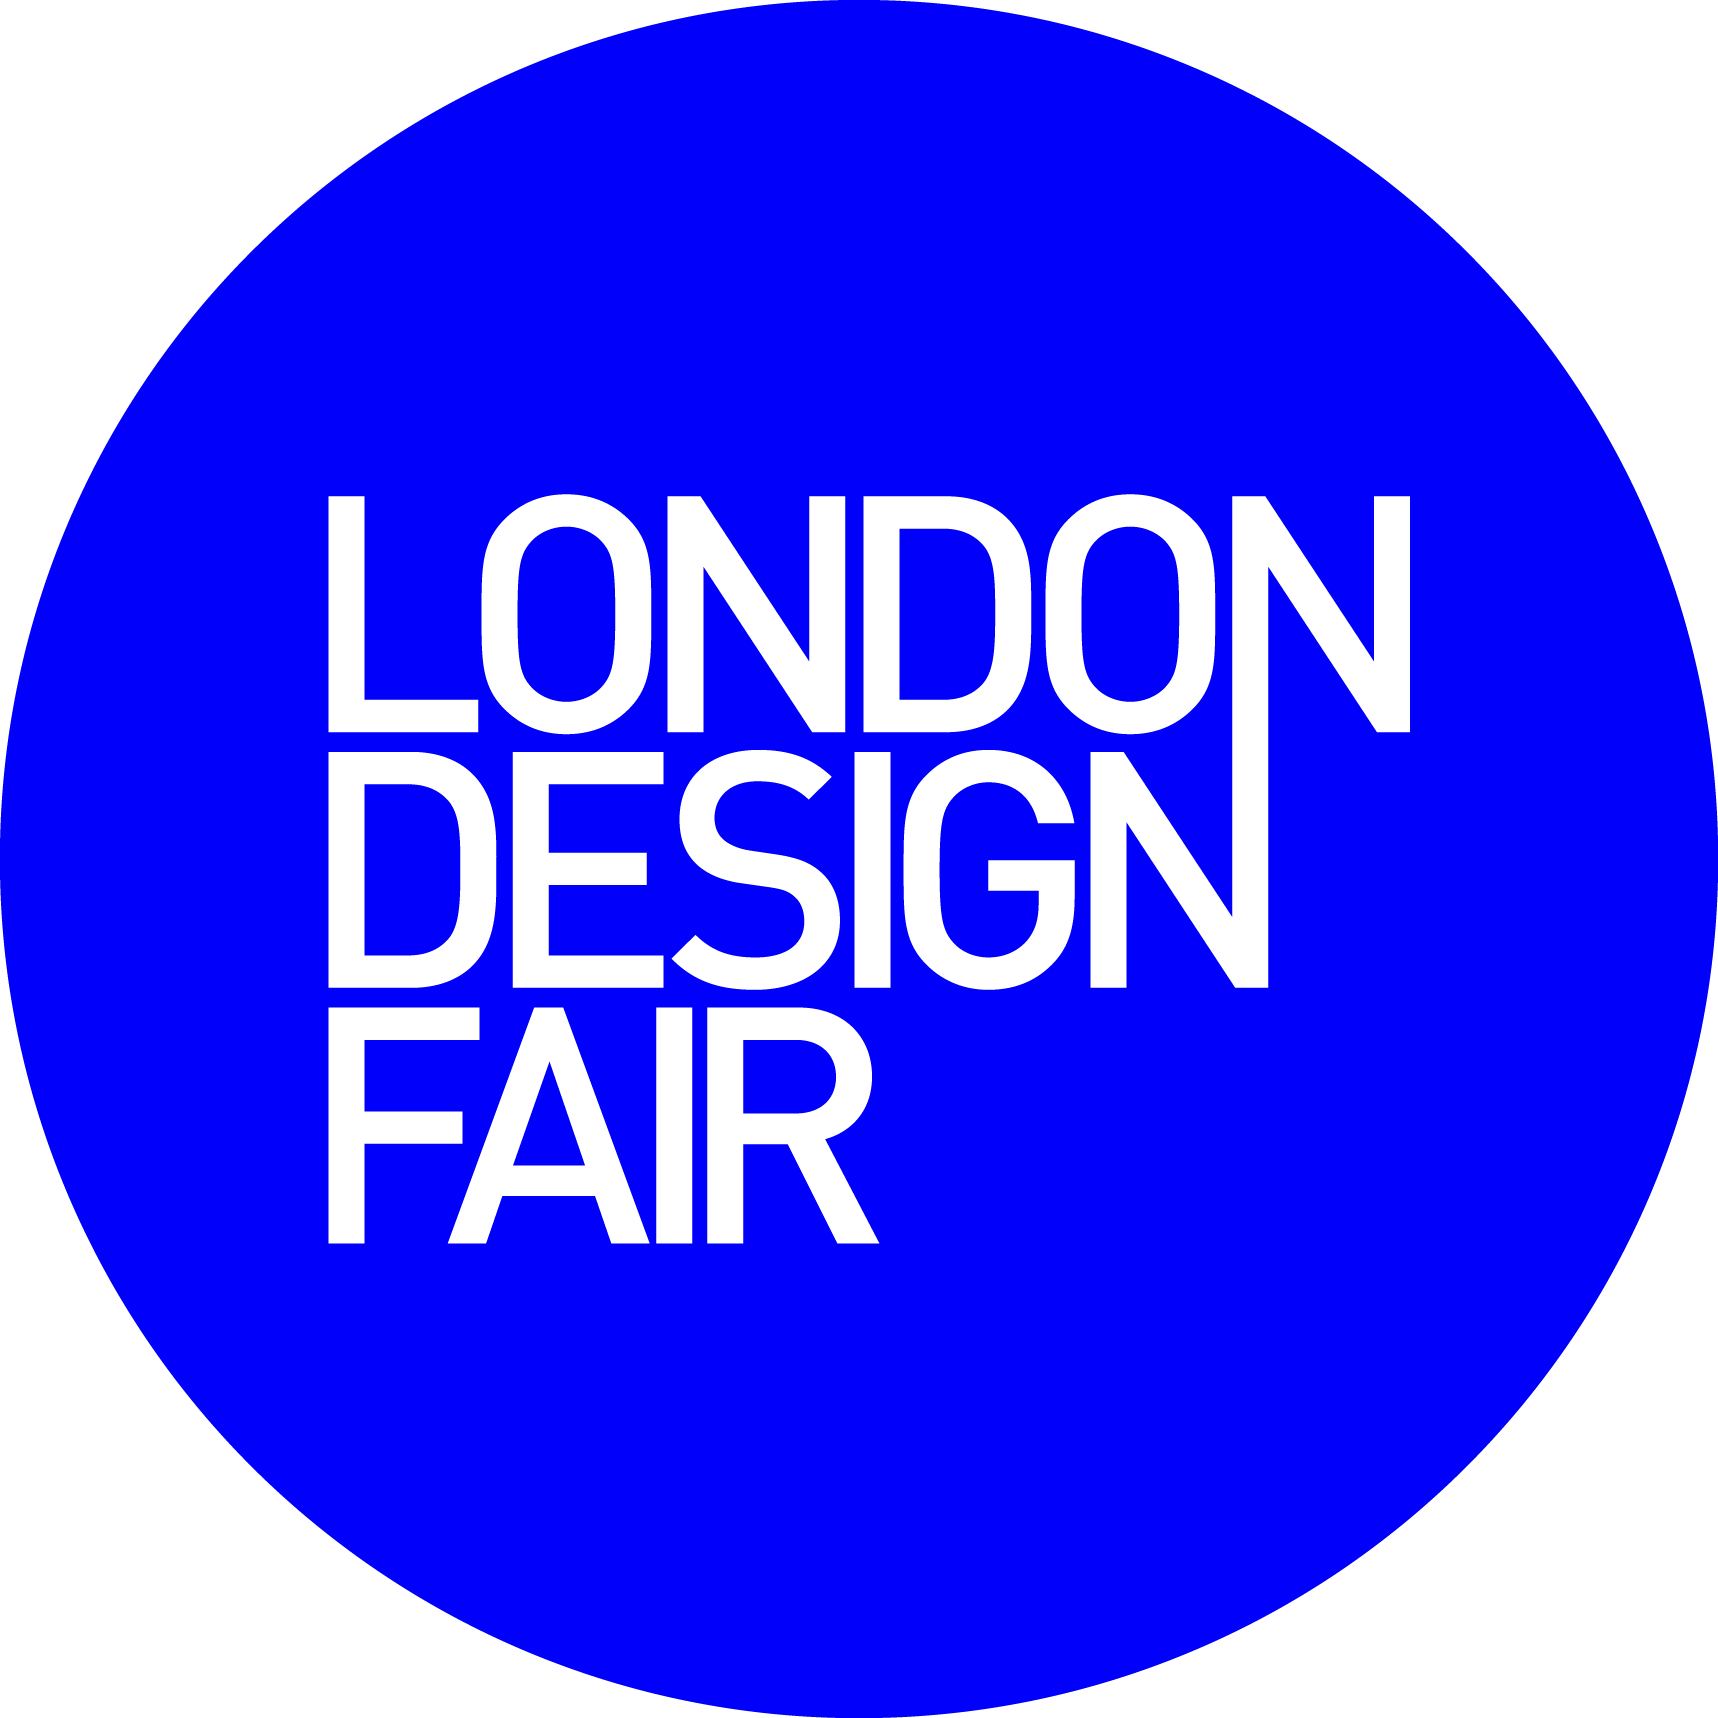 We are thrilled to be taking part in the world famous London Design Fair. Sept 22 - 25th.